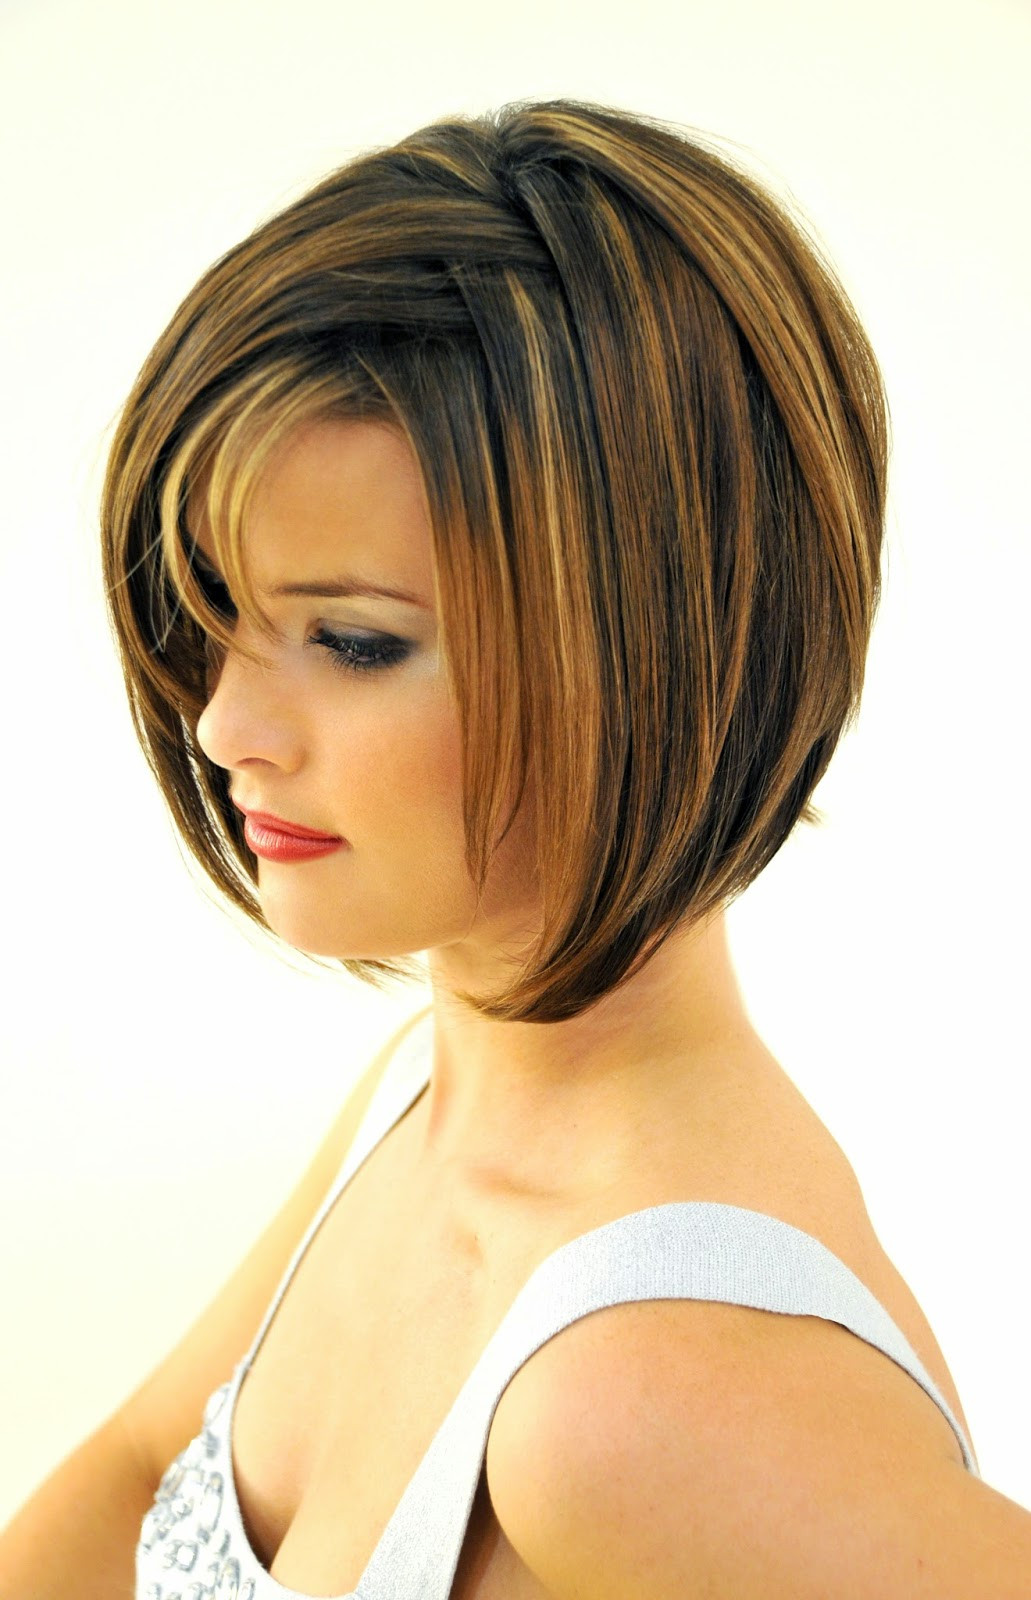 New Bob Hairstyles  Layered Bob Hairstyles for Chic and Beautiful Looks The